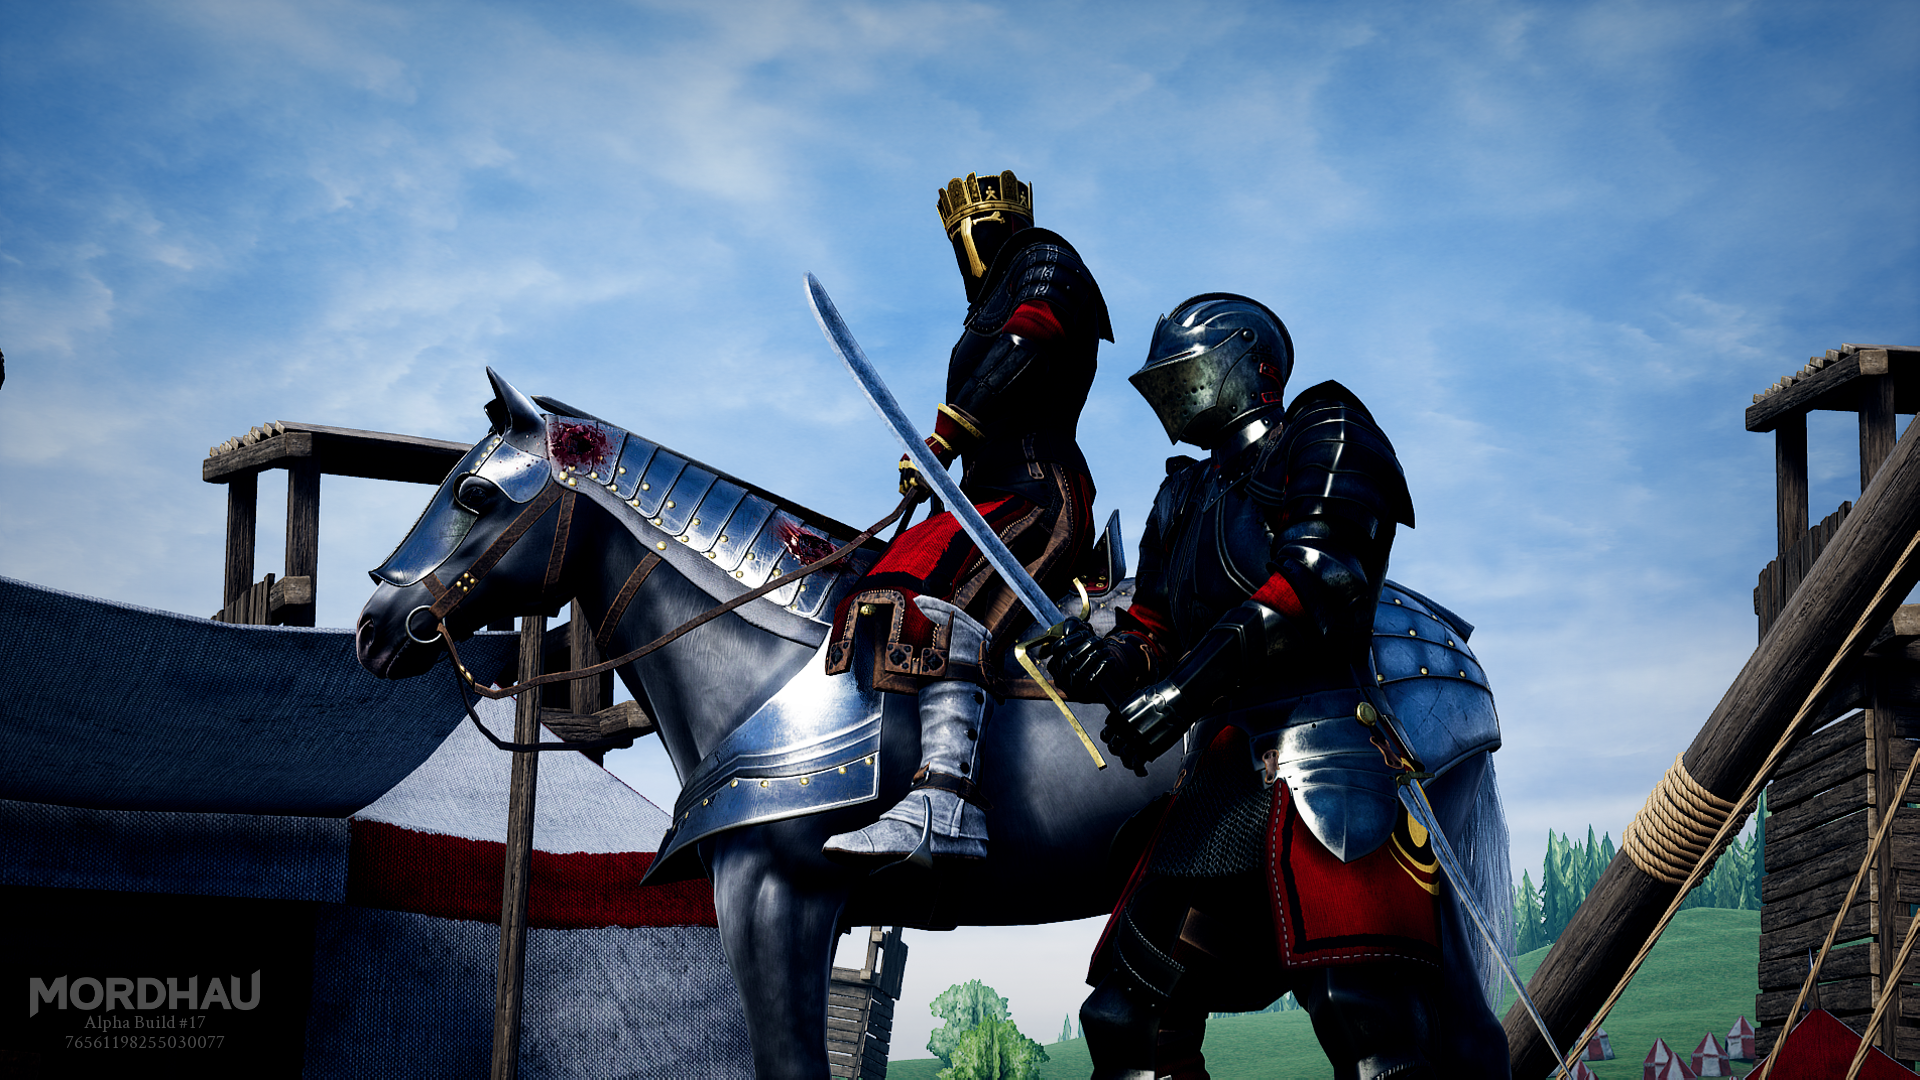 Mordhau-Win64-Shipping_2018-09-14_20-11-51.png